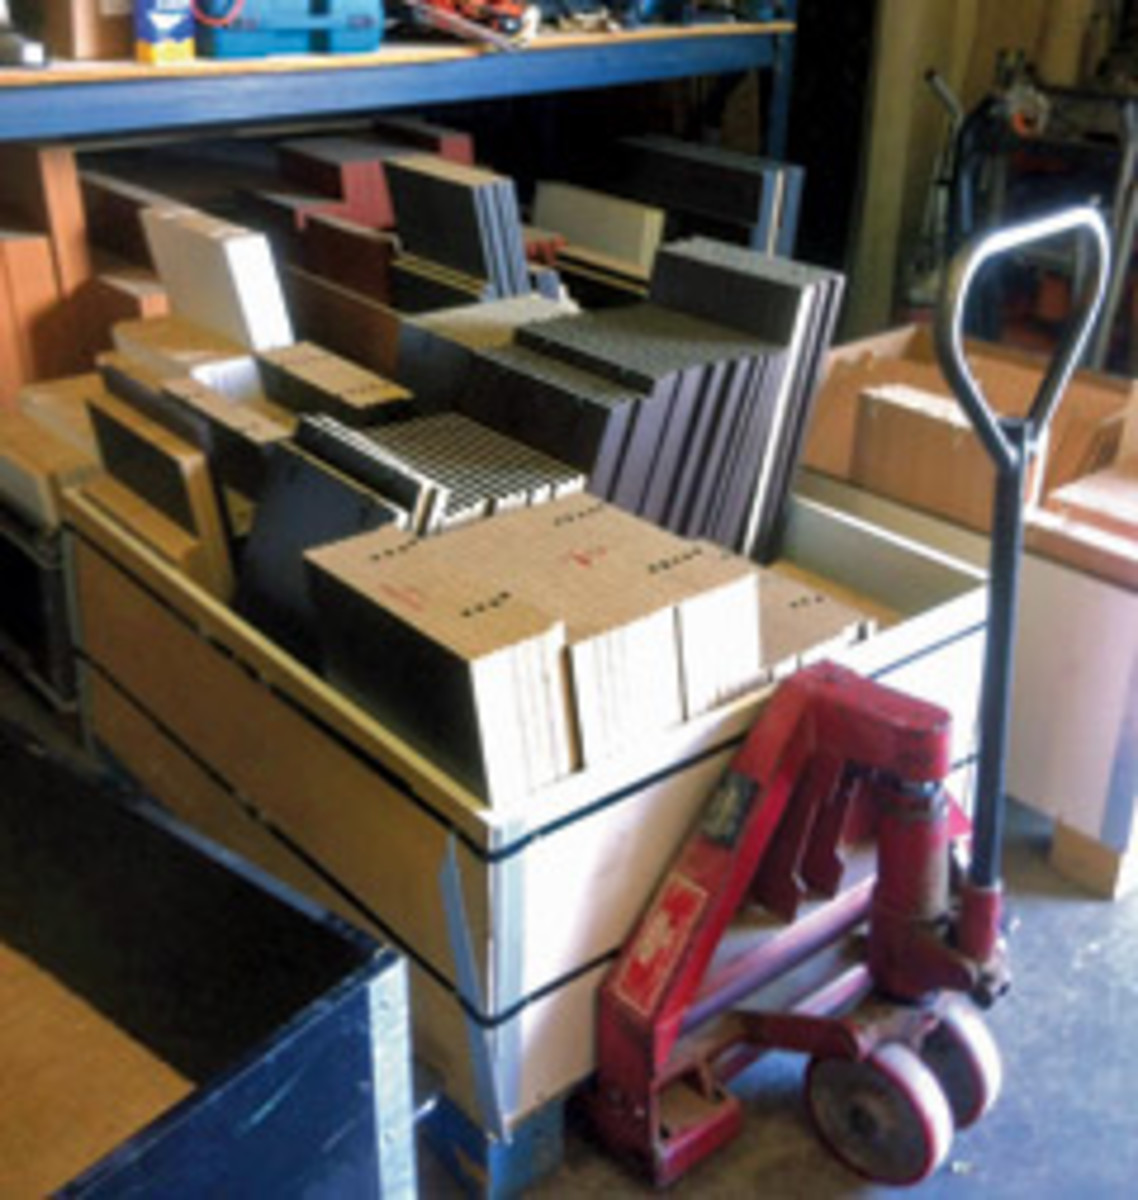 Single-unit batching involves moving a set of parts through the shop as a unit.